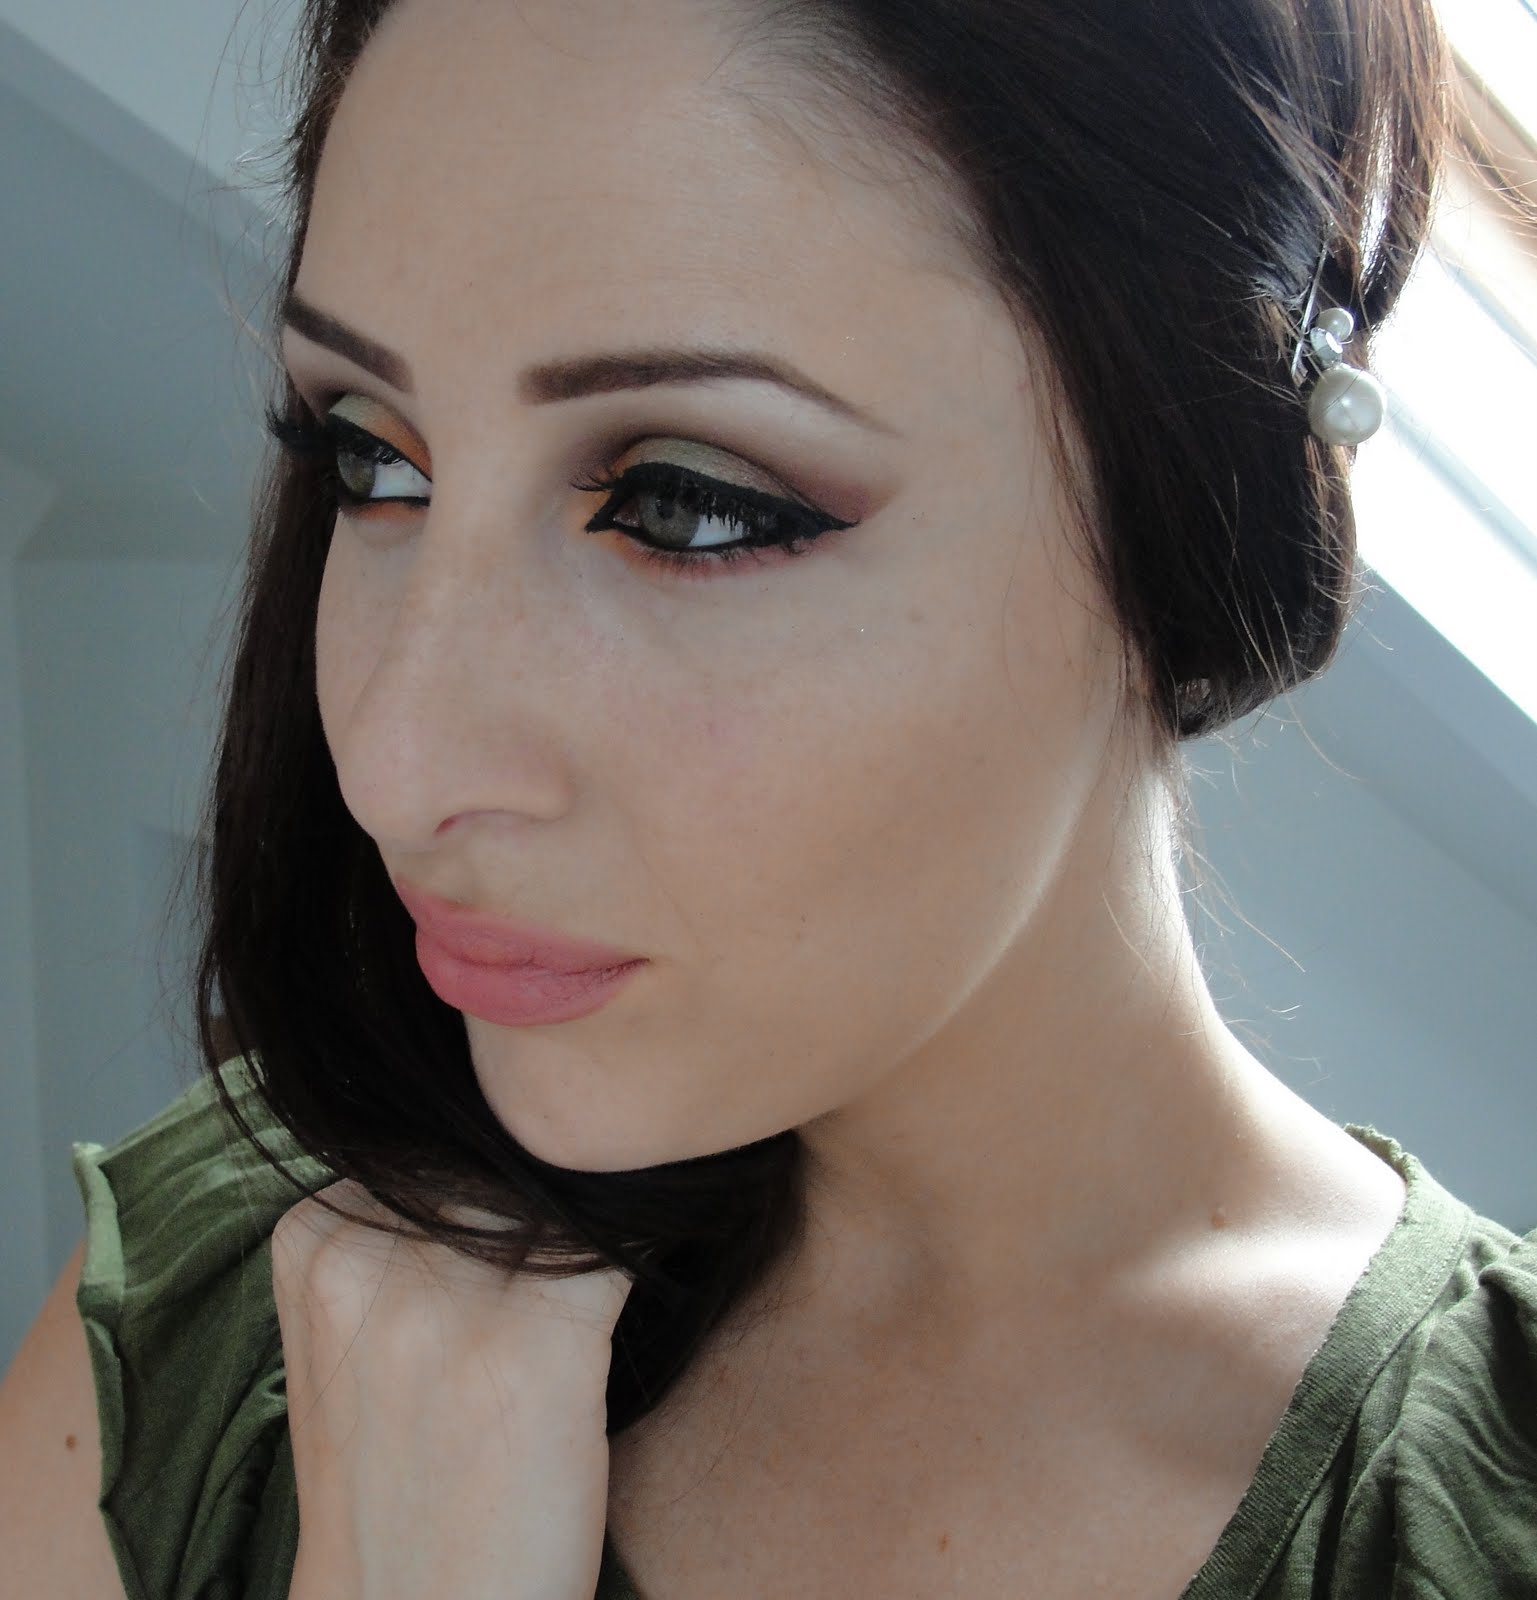 a cute Arab eye make-up,